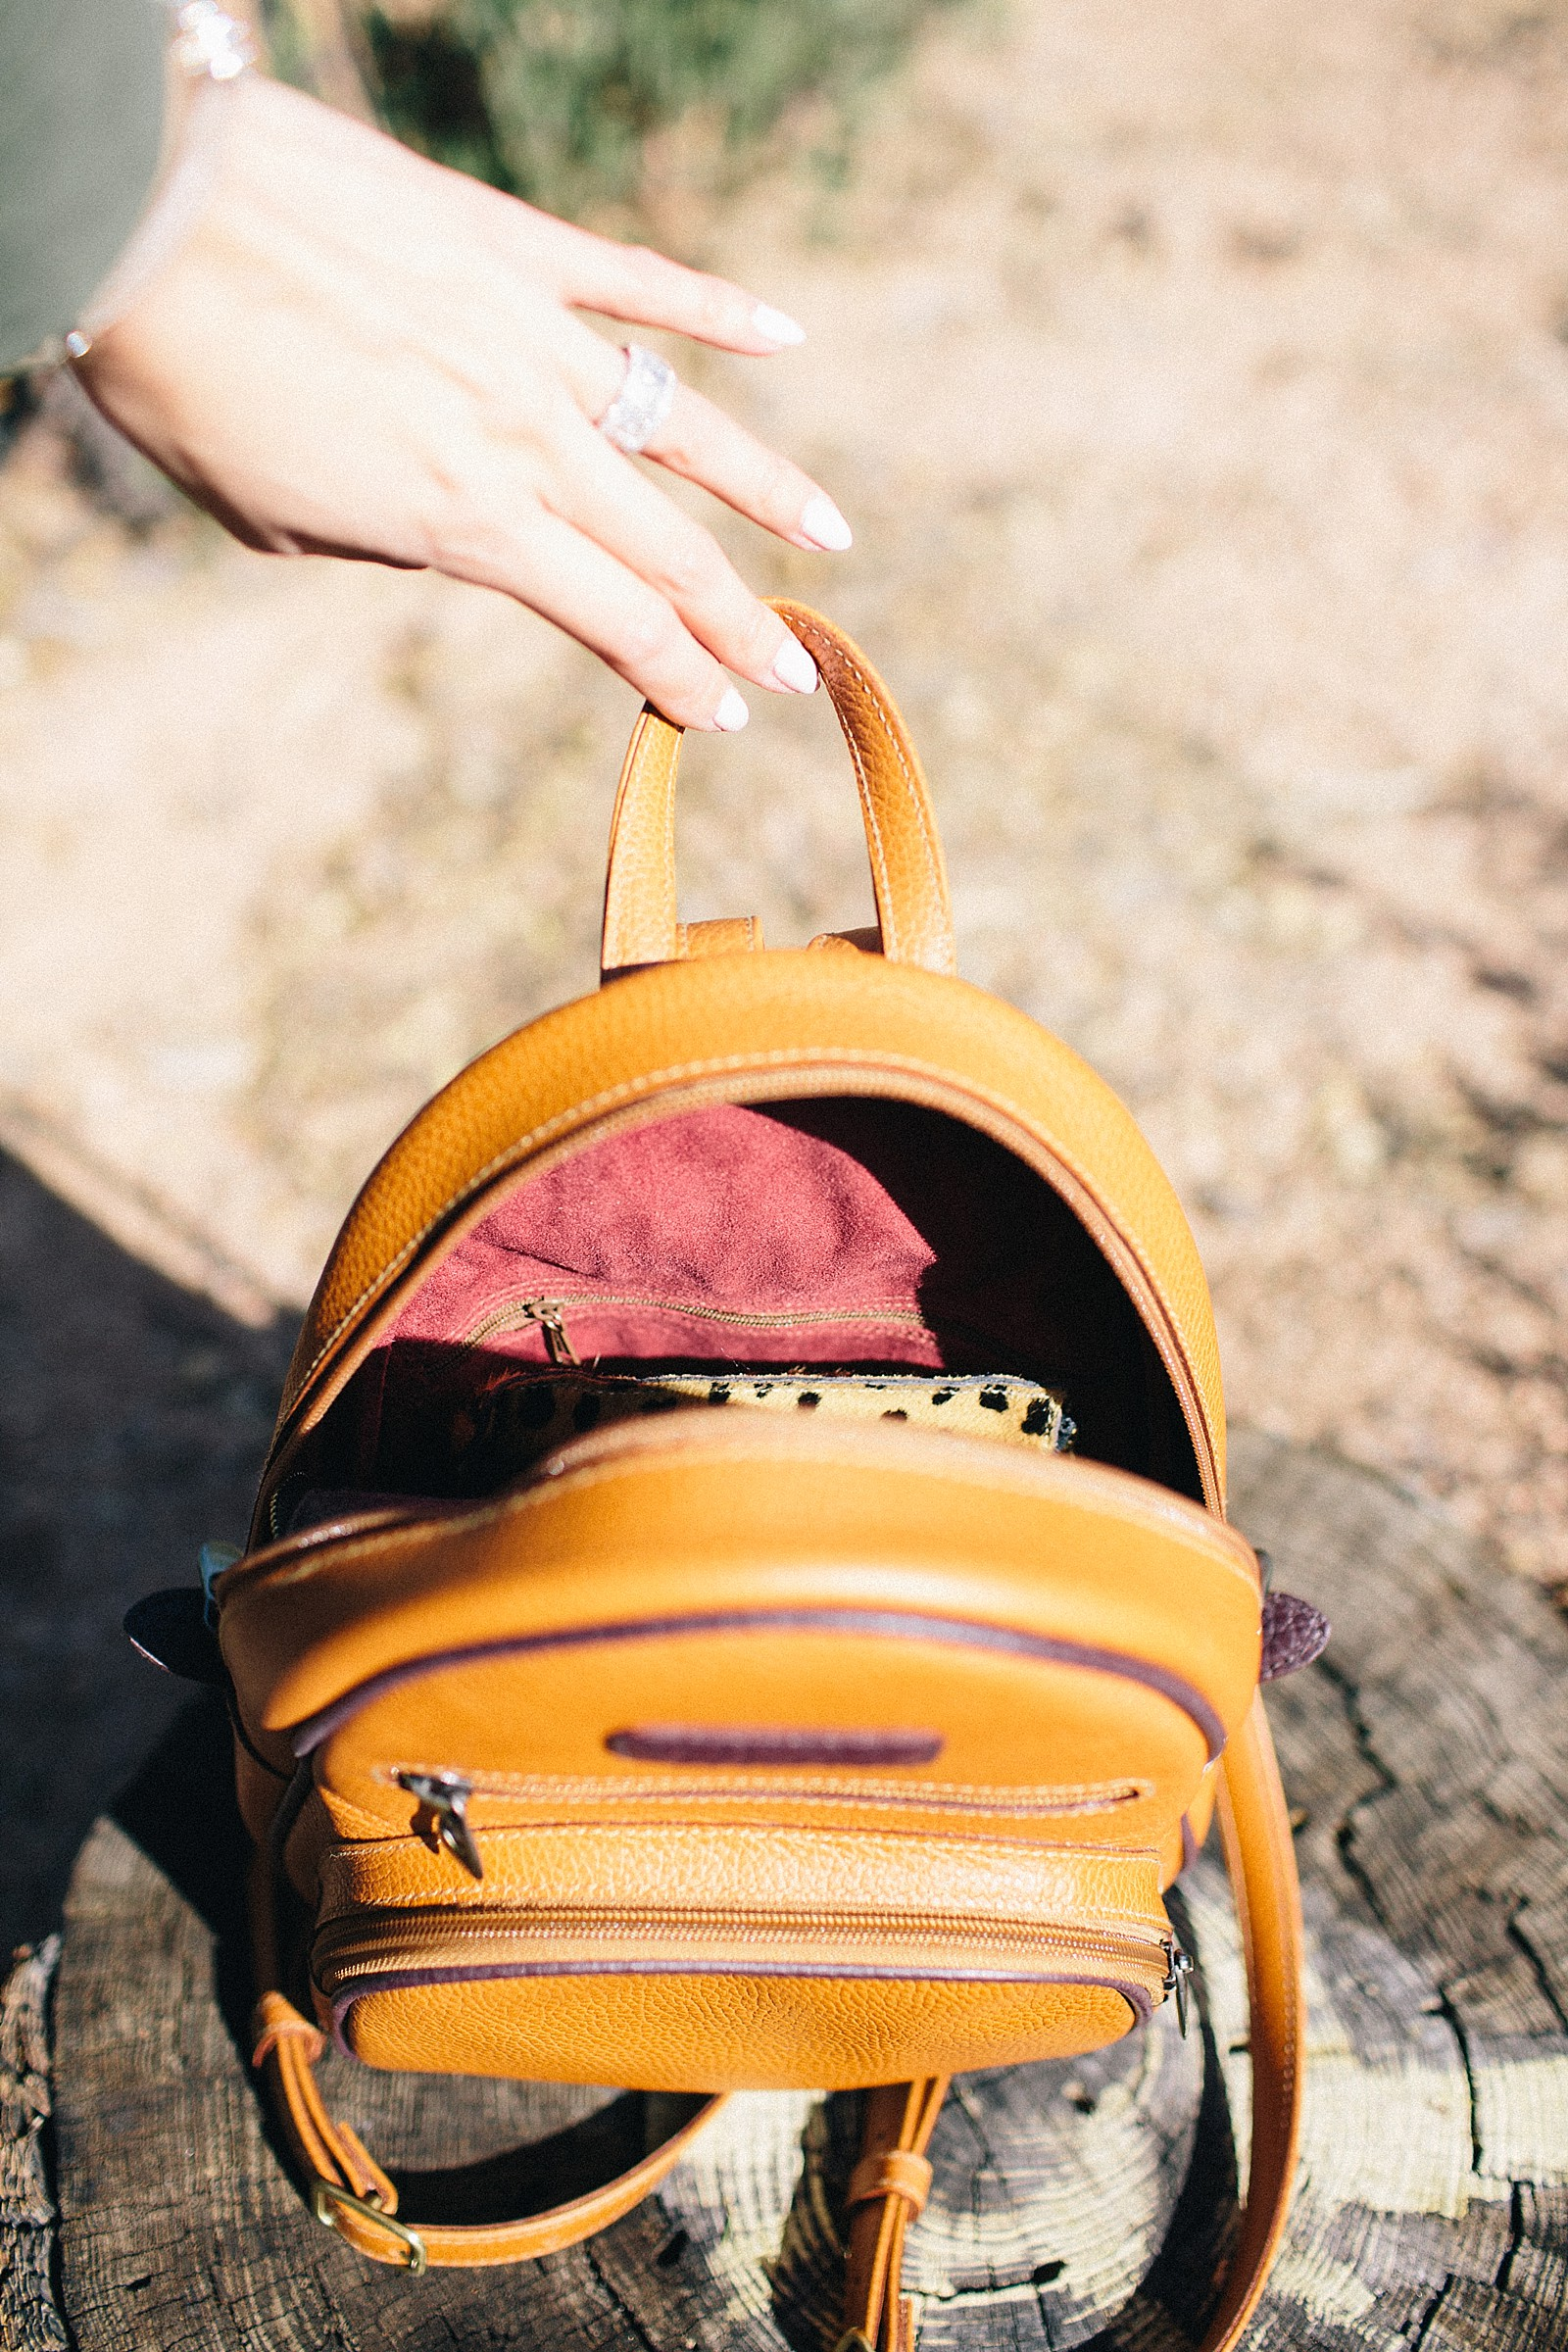 payson-arizona-phoenix-blogger-lifestyle-fashion-beauty-leather-backpack-travel-capolavori-3236